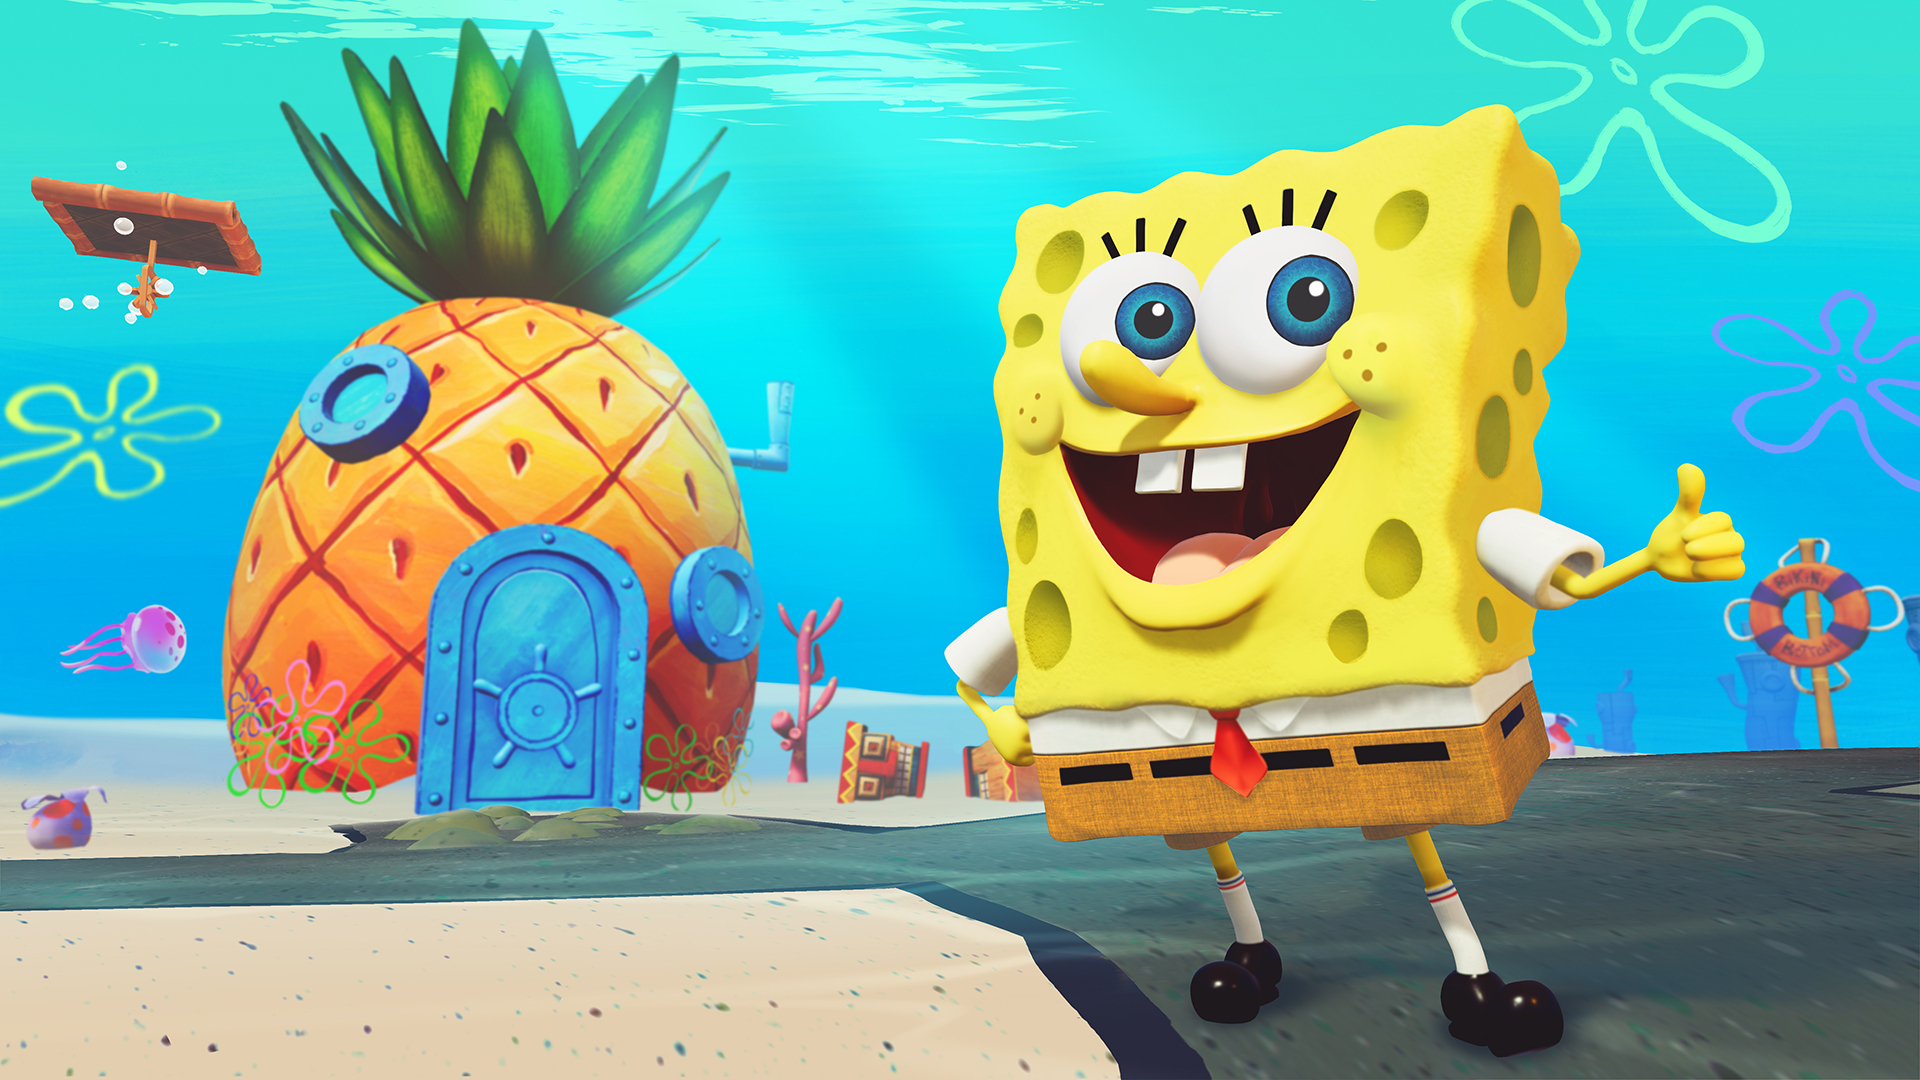 Скриншот из игры SpongeBob SquarePants: Battle for Bikini Bottom - Rehydrated под номером 2